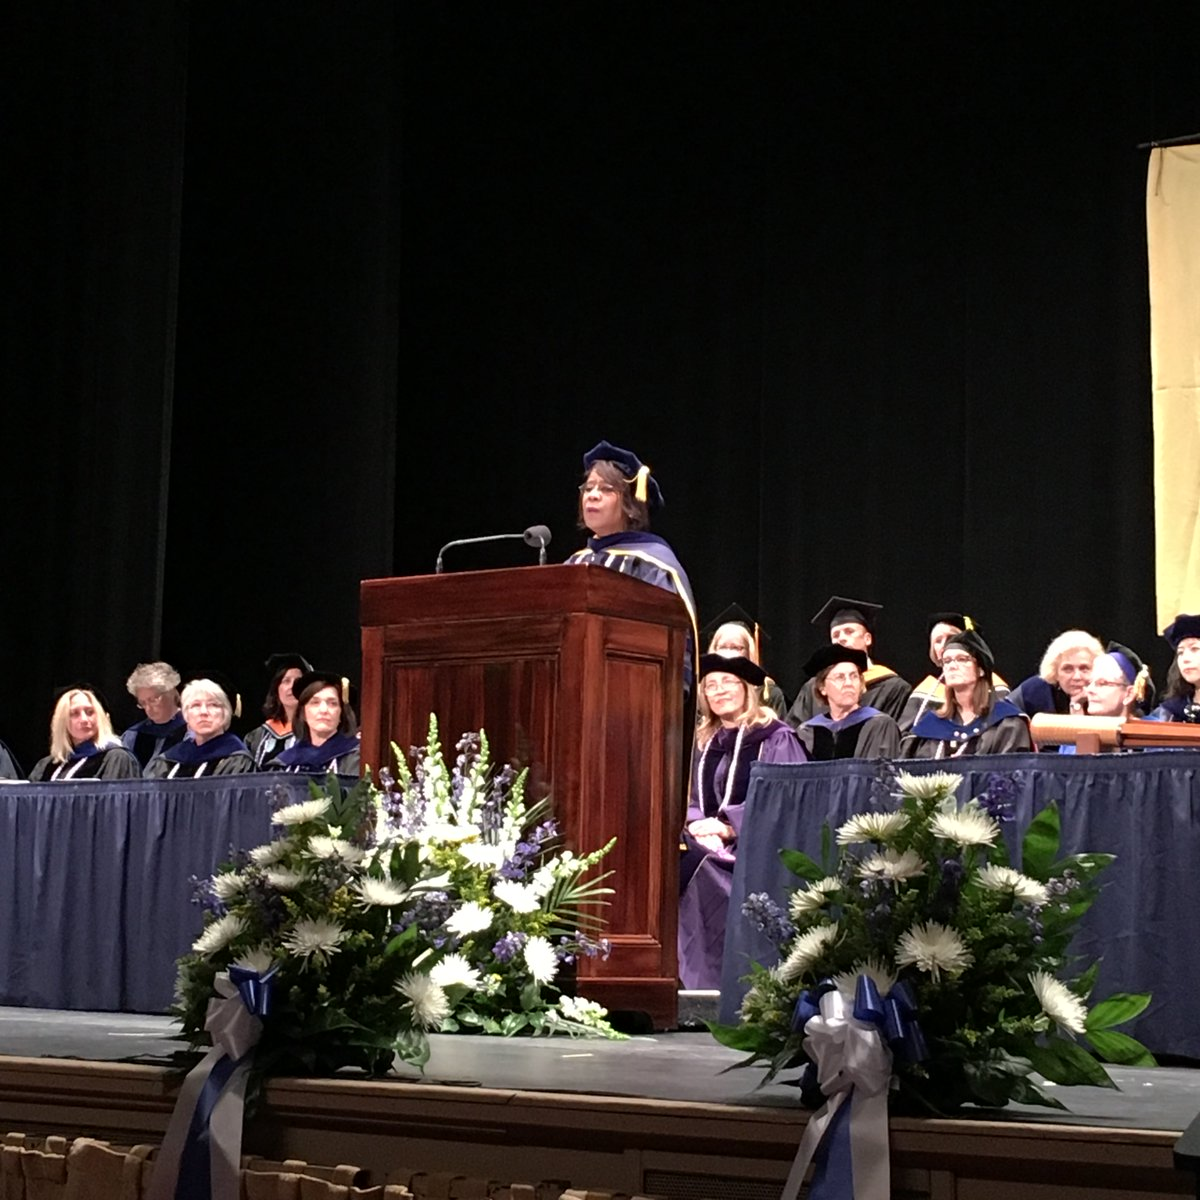 """Leadership is in your DNA."" - Dr. Bernice Coleman, 2016 Commencement Address https://t.co/RDuTpsjiCe"